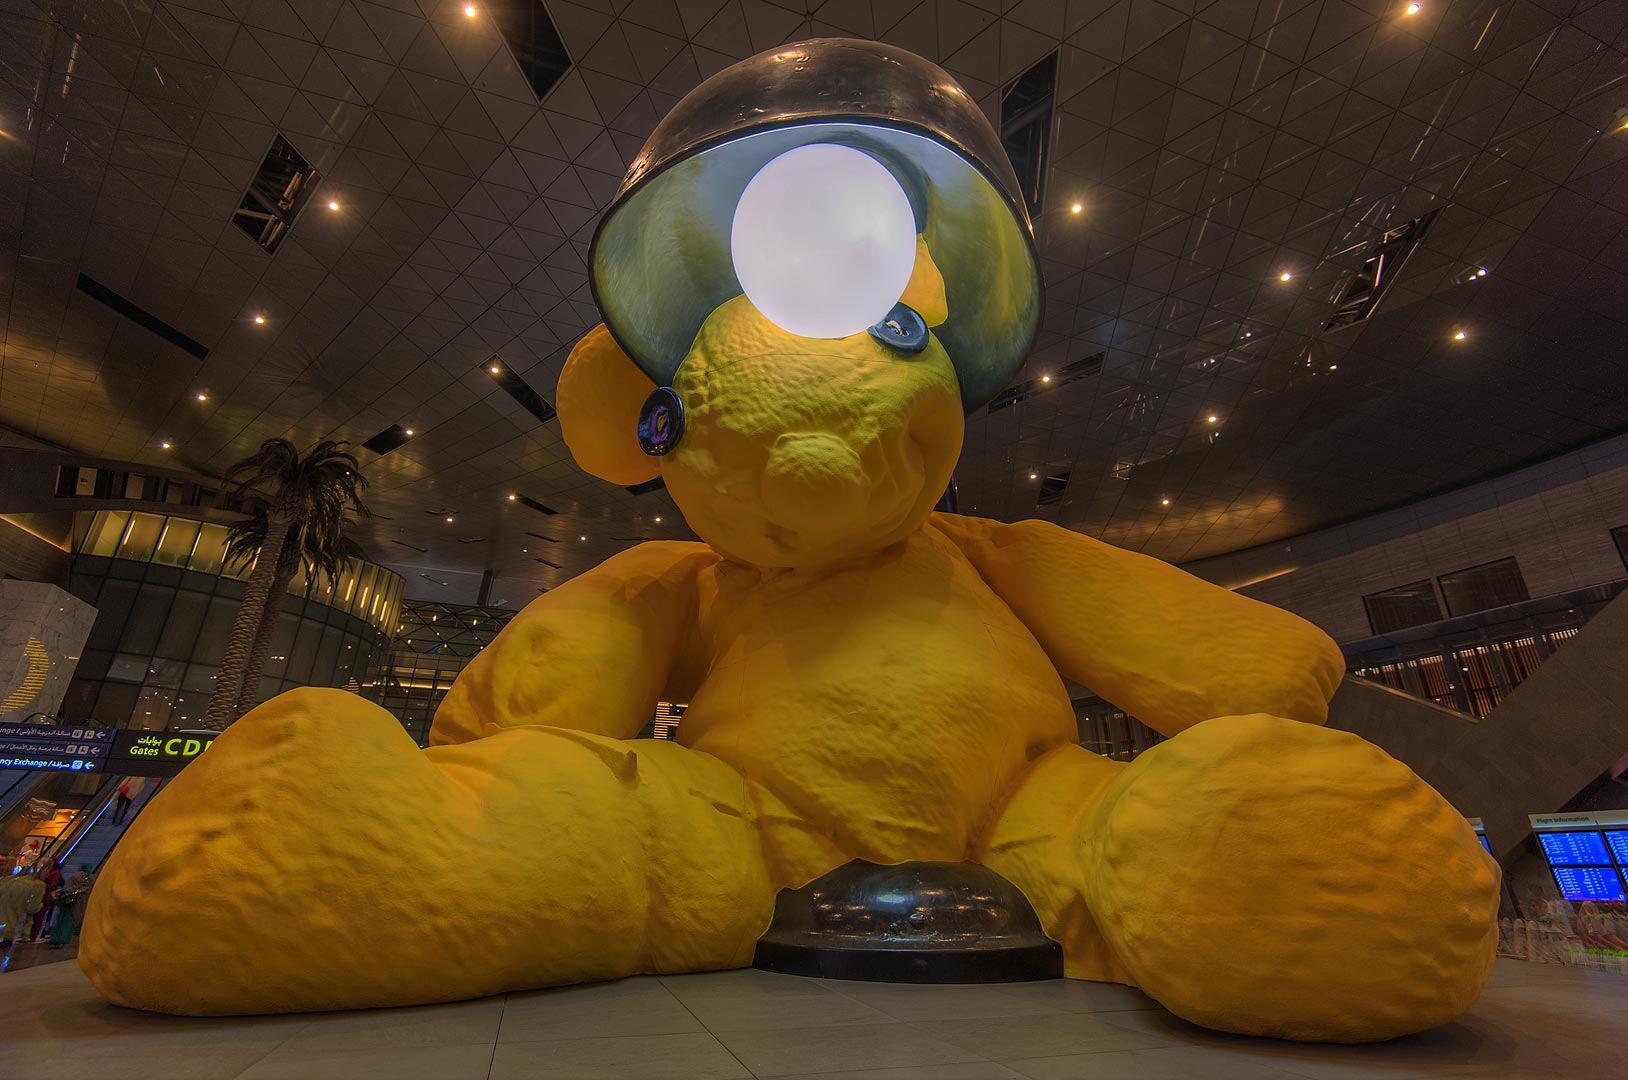 Lamp Bear sculpture by Urs Fischer in Hamad International Airport. Doha, Qatar